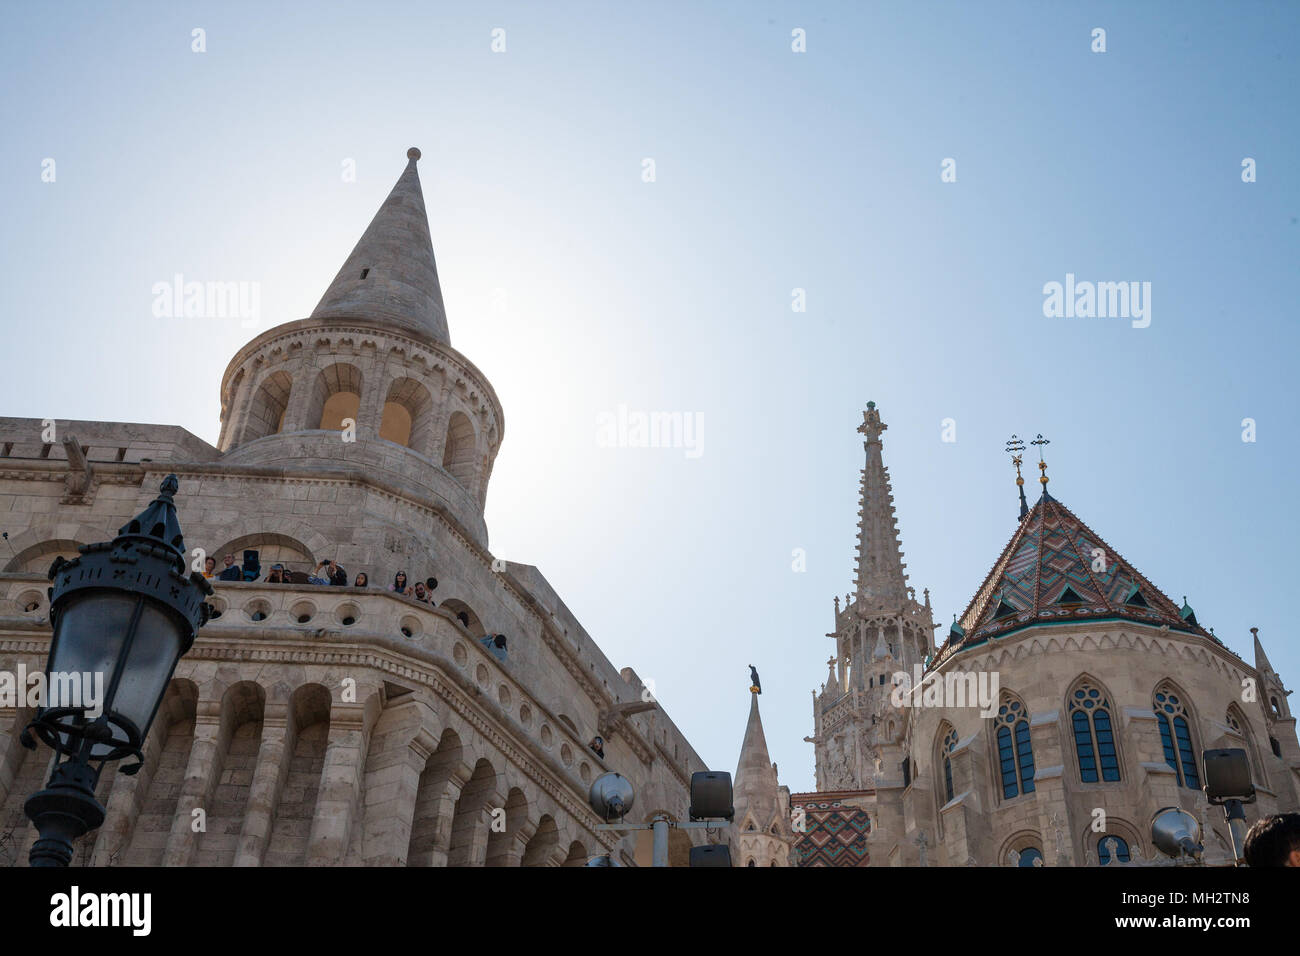 BUDAPEST, HUNGARY - APRIL 8, 2017: Fisherman's Bastion (Halaszbastya) on Budapest castle during the afternoon. This terrace in neo-Gothic and neo-Roma - Stock Image